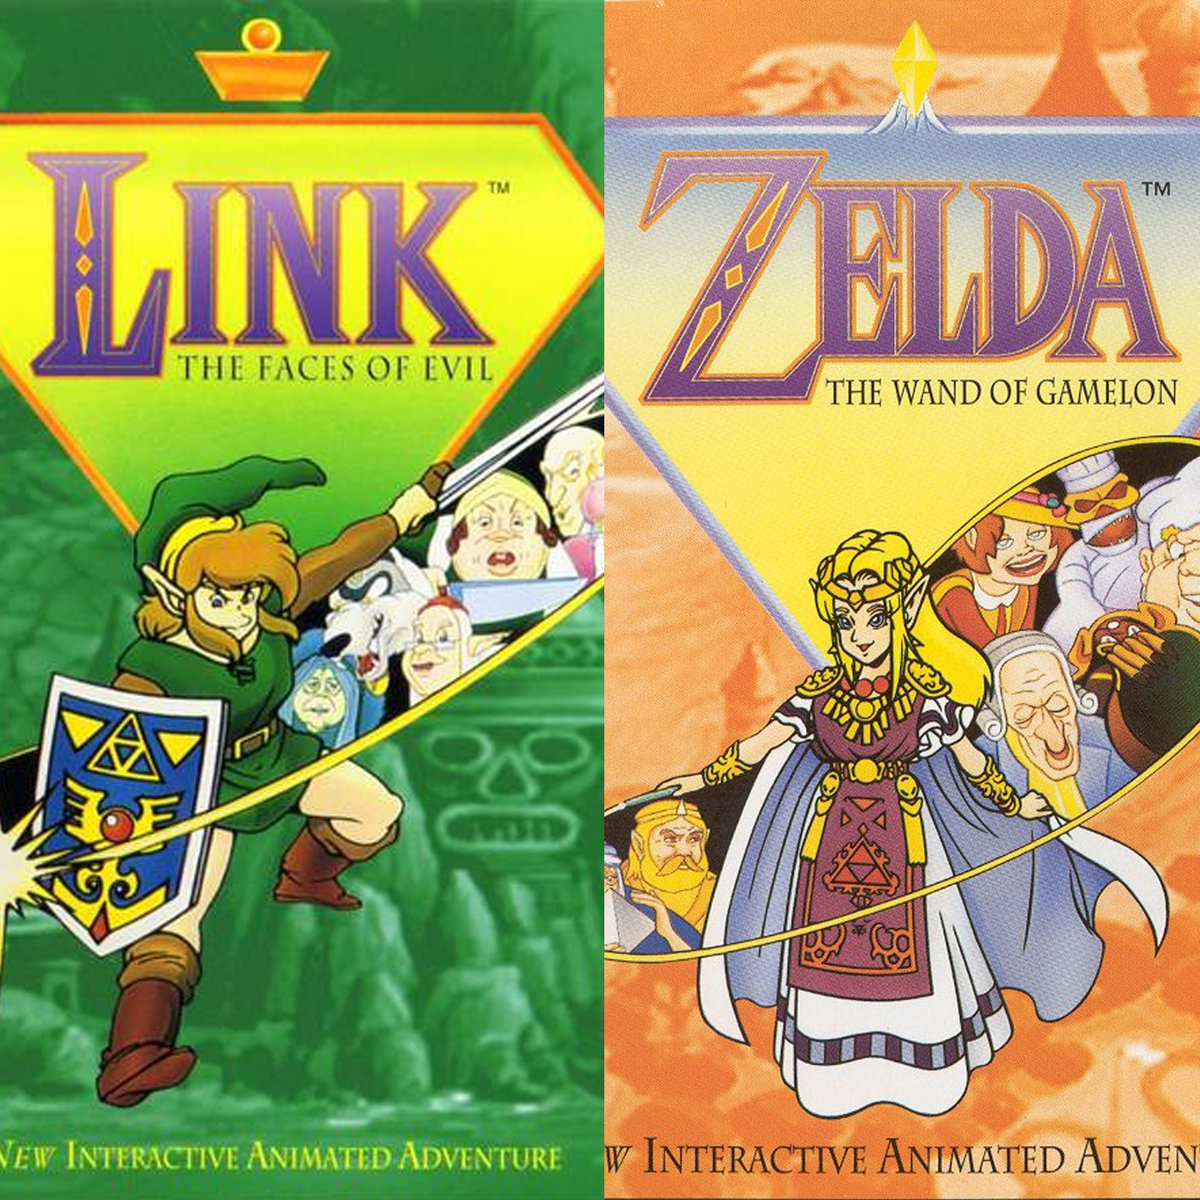 Zelda: The Wand of Gamelon and Link: The Faces of Evil